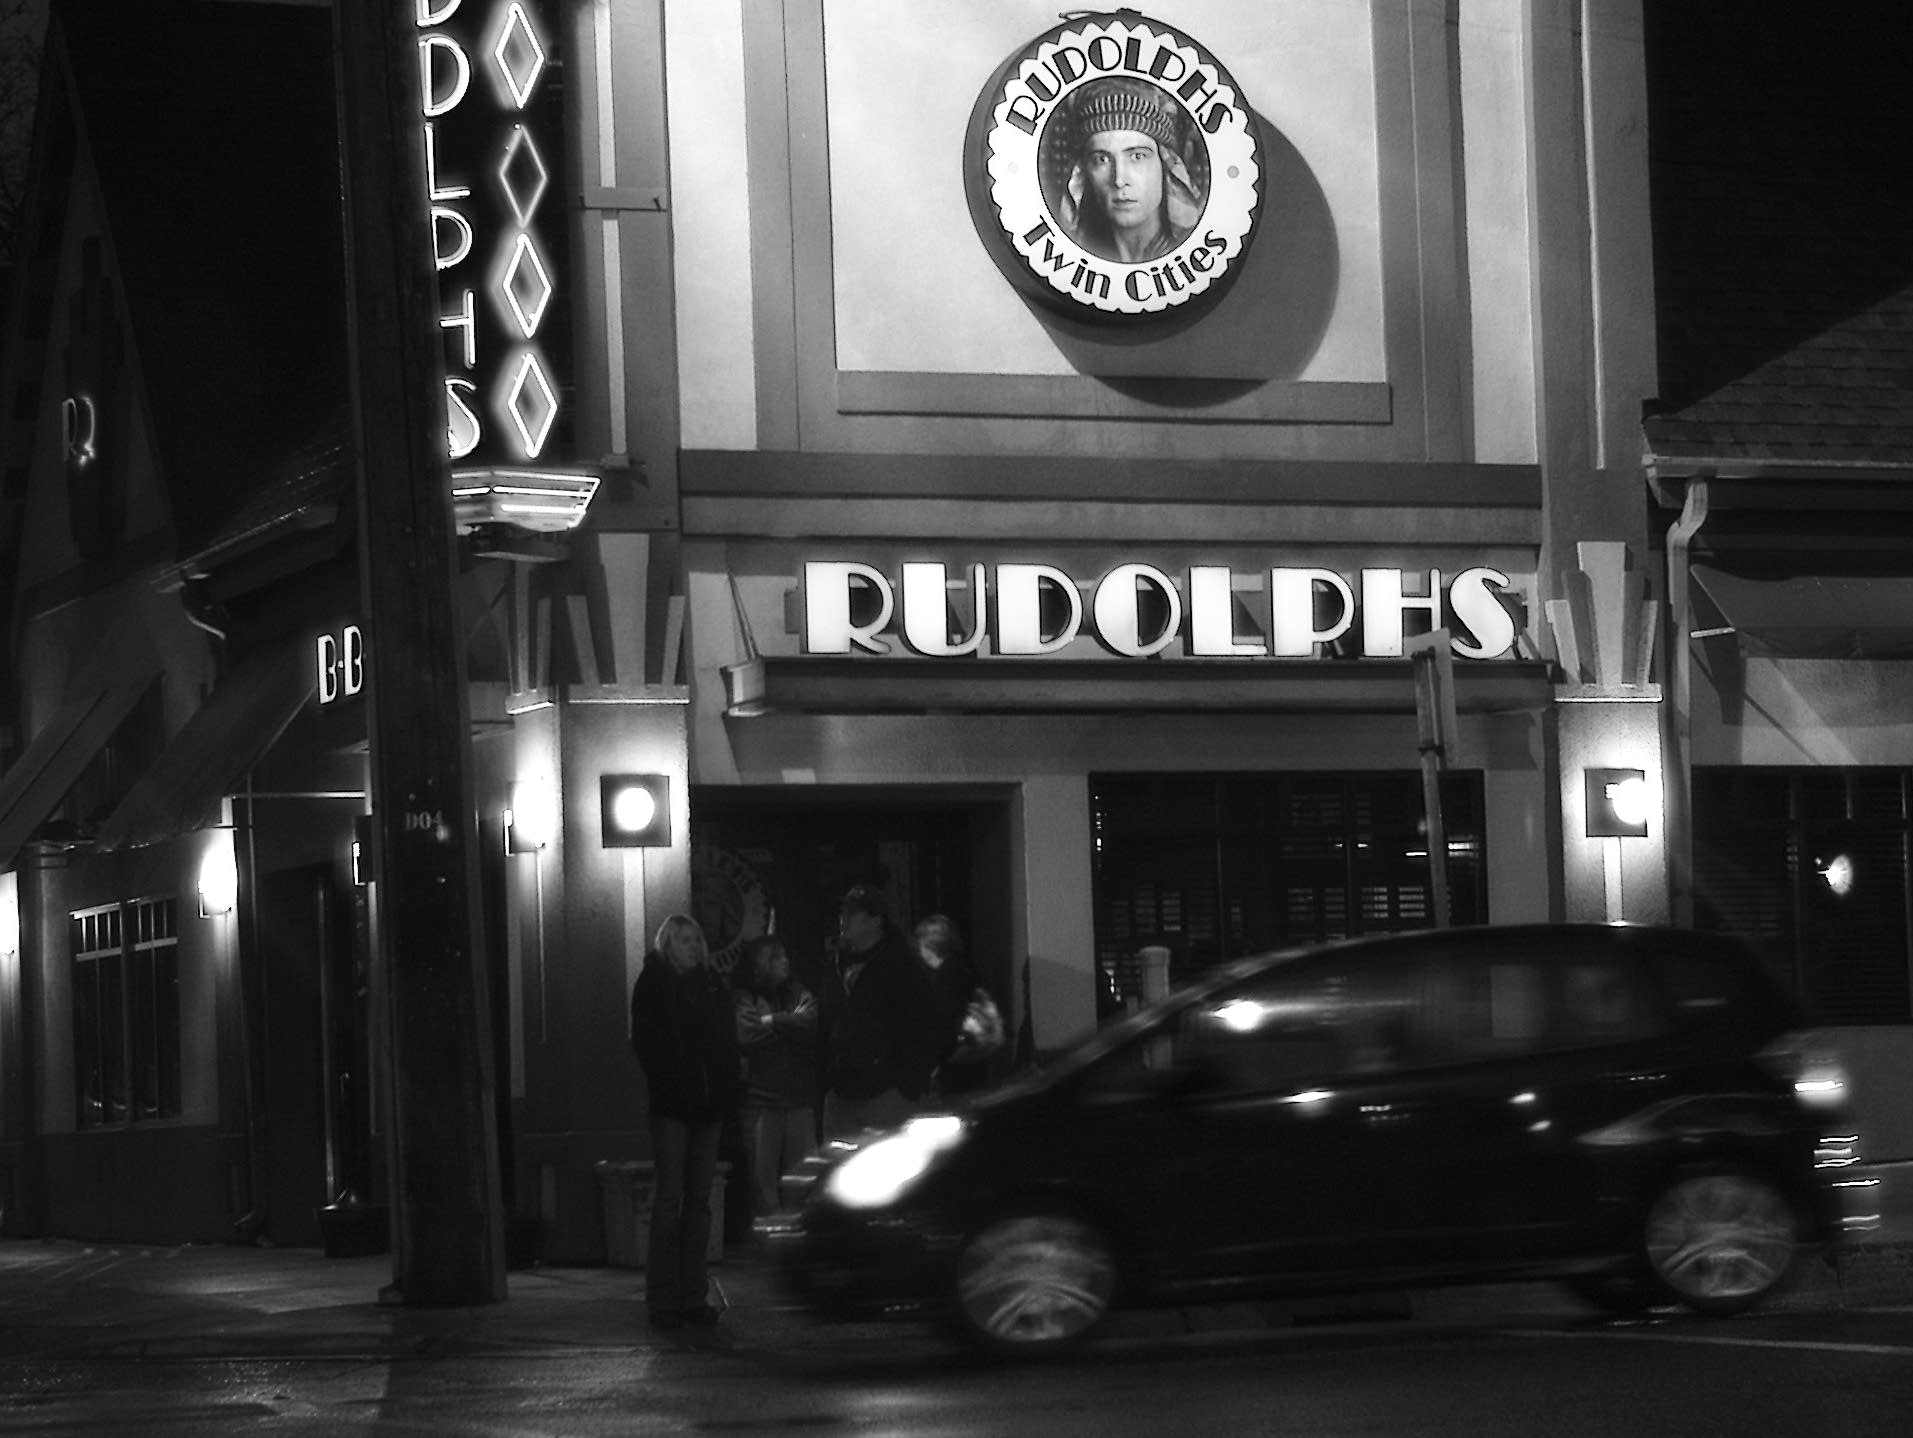 Rudolphs Bar-B-Que, photographed in 2009.